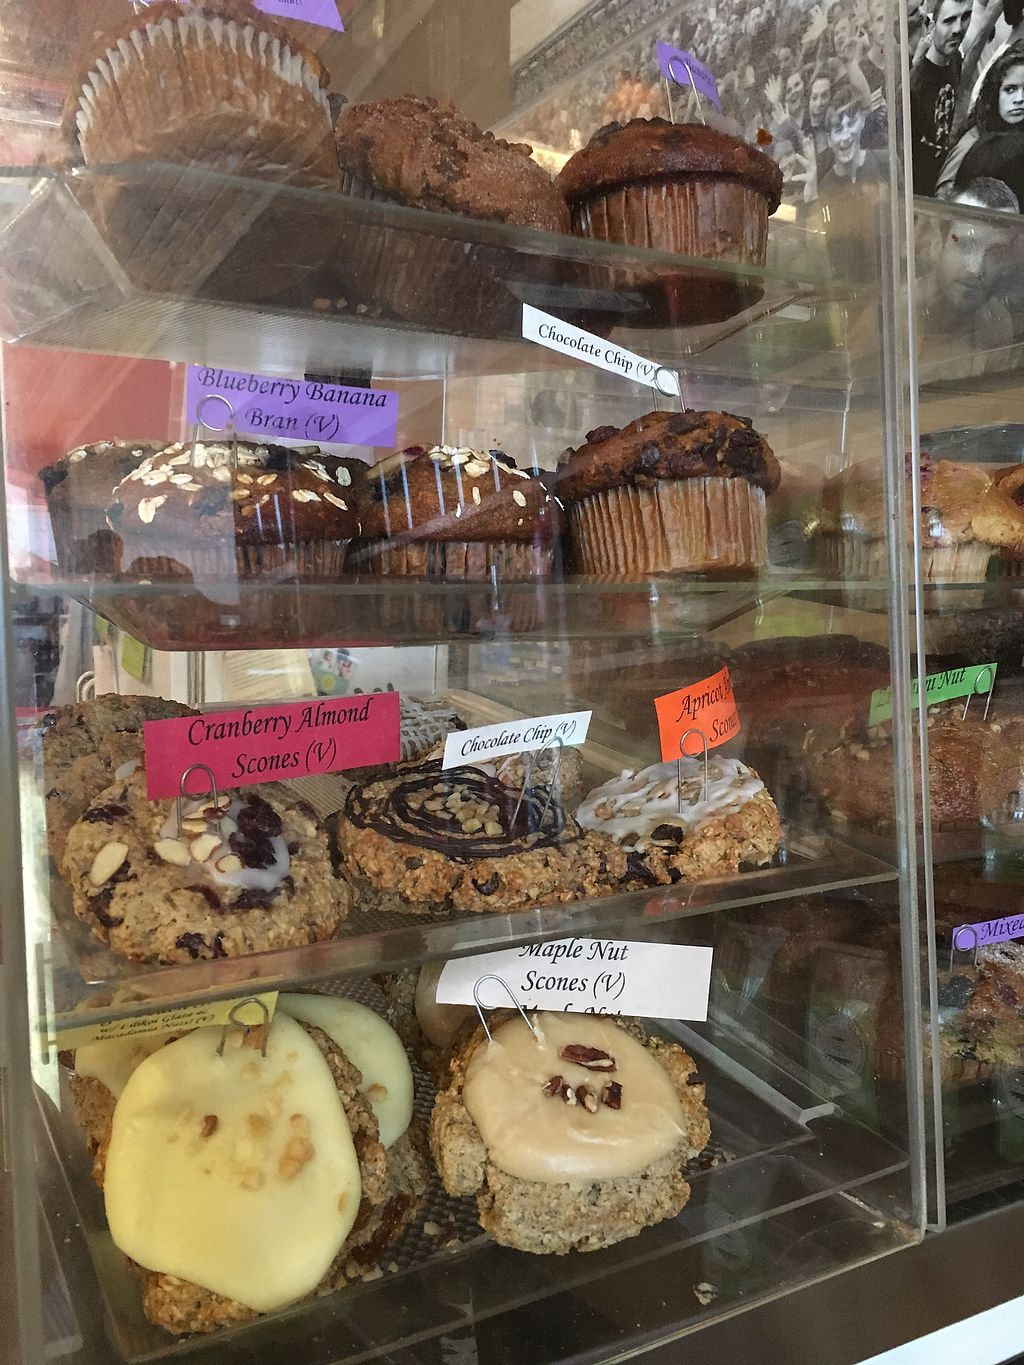 """Photo of Highland Coffee Company  by <a href=""""/members/profile/Jonaweinhofen"""">Jonaweinhofen</a> <br/>Assorted vegan pastries and muffins <br/> September 30, 2017  - <a href='/contact/abuse/image/85623/310207'>Report</a>"""